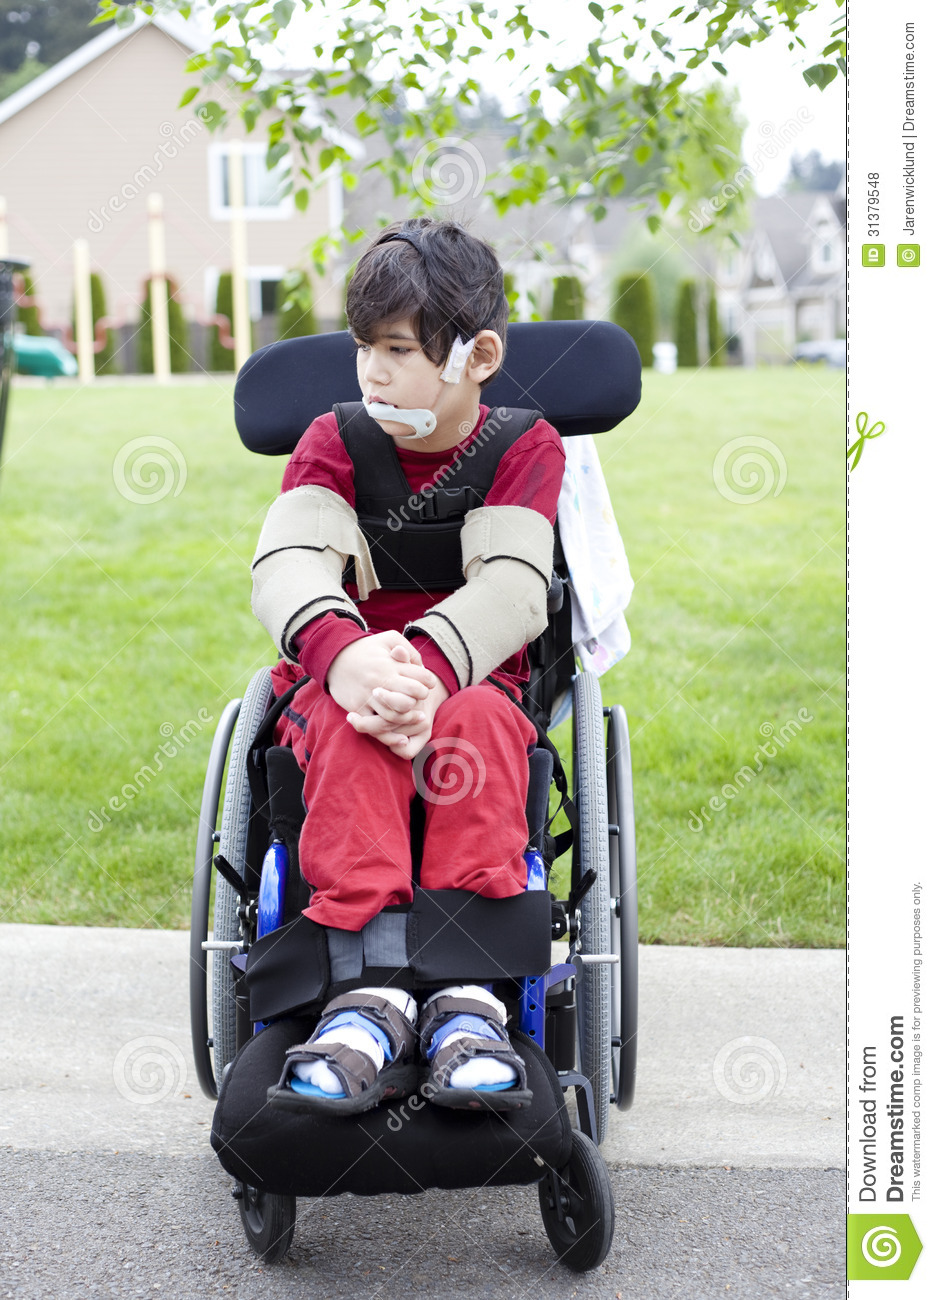 Disabled Little Boy In Wheelchair Outdoors Stock Photo